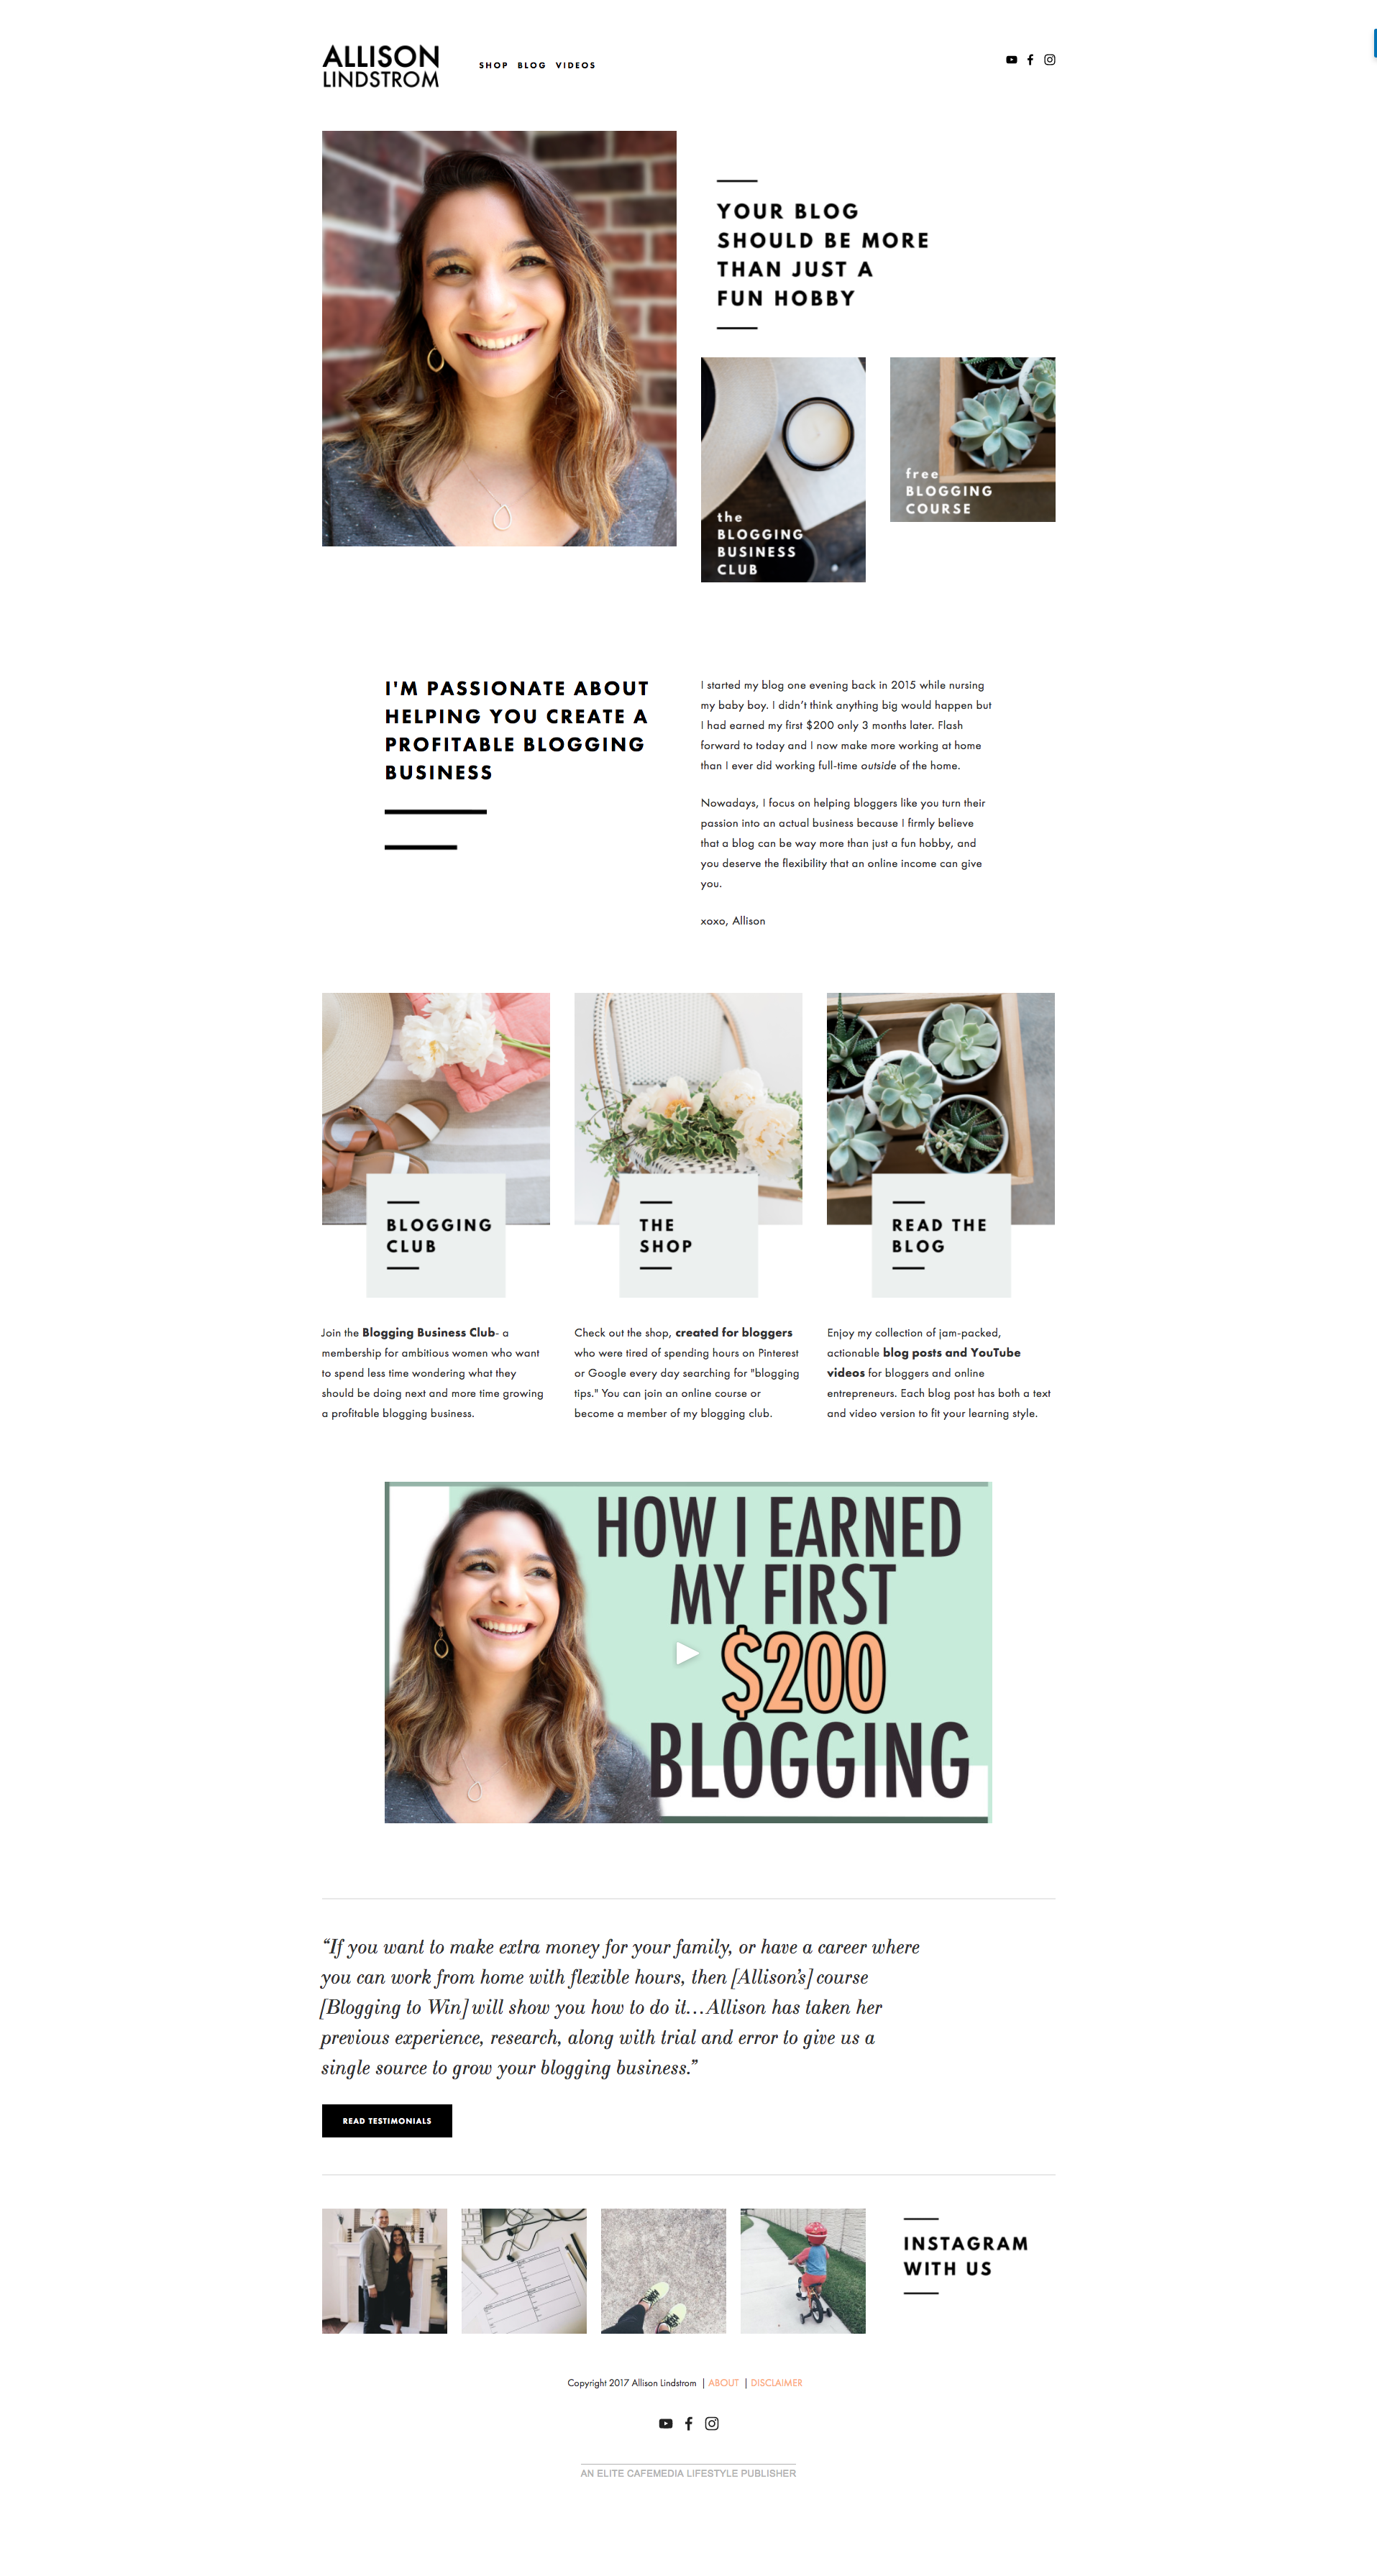 Looking for an affordable, pre-made Squarespace design kit to give your blog a makeover? AllisonLindstrom.com recently got a facelift and I thought I'd share a complete review on the website theme and the incredible Station Seven team behind the project!